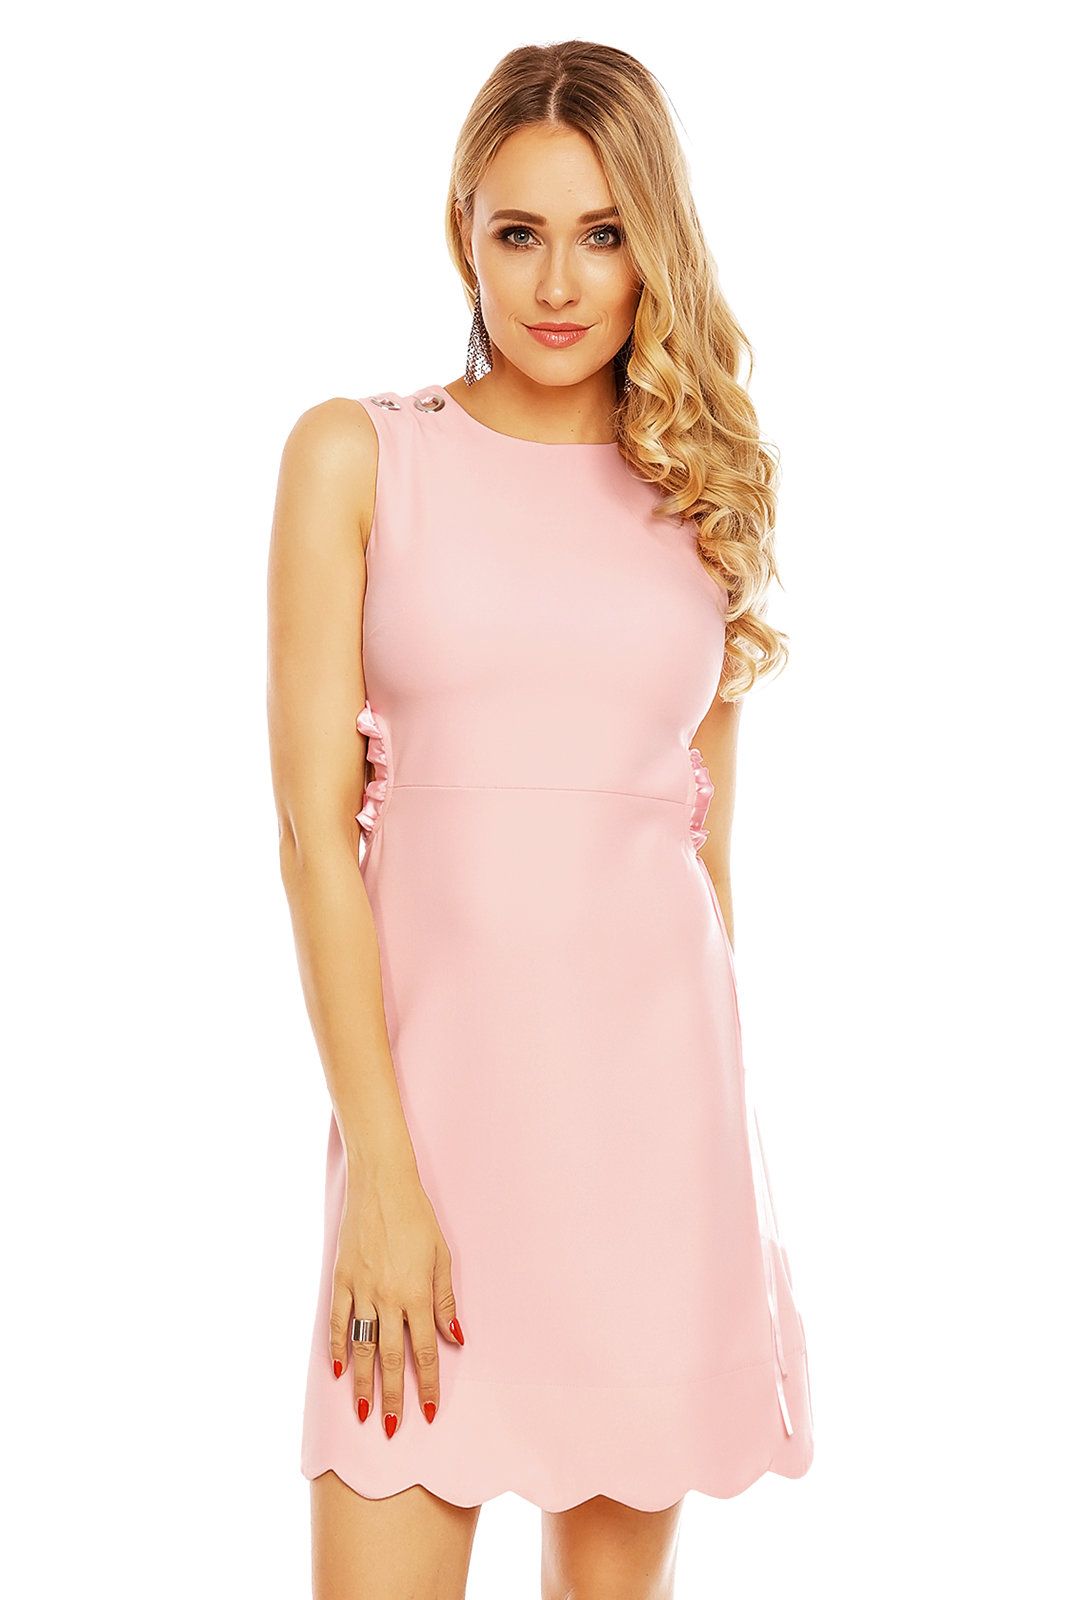 Damen Kleid Mini Cocktail Abendkleid Partykleid Schulterfrei Sommer MR628-6